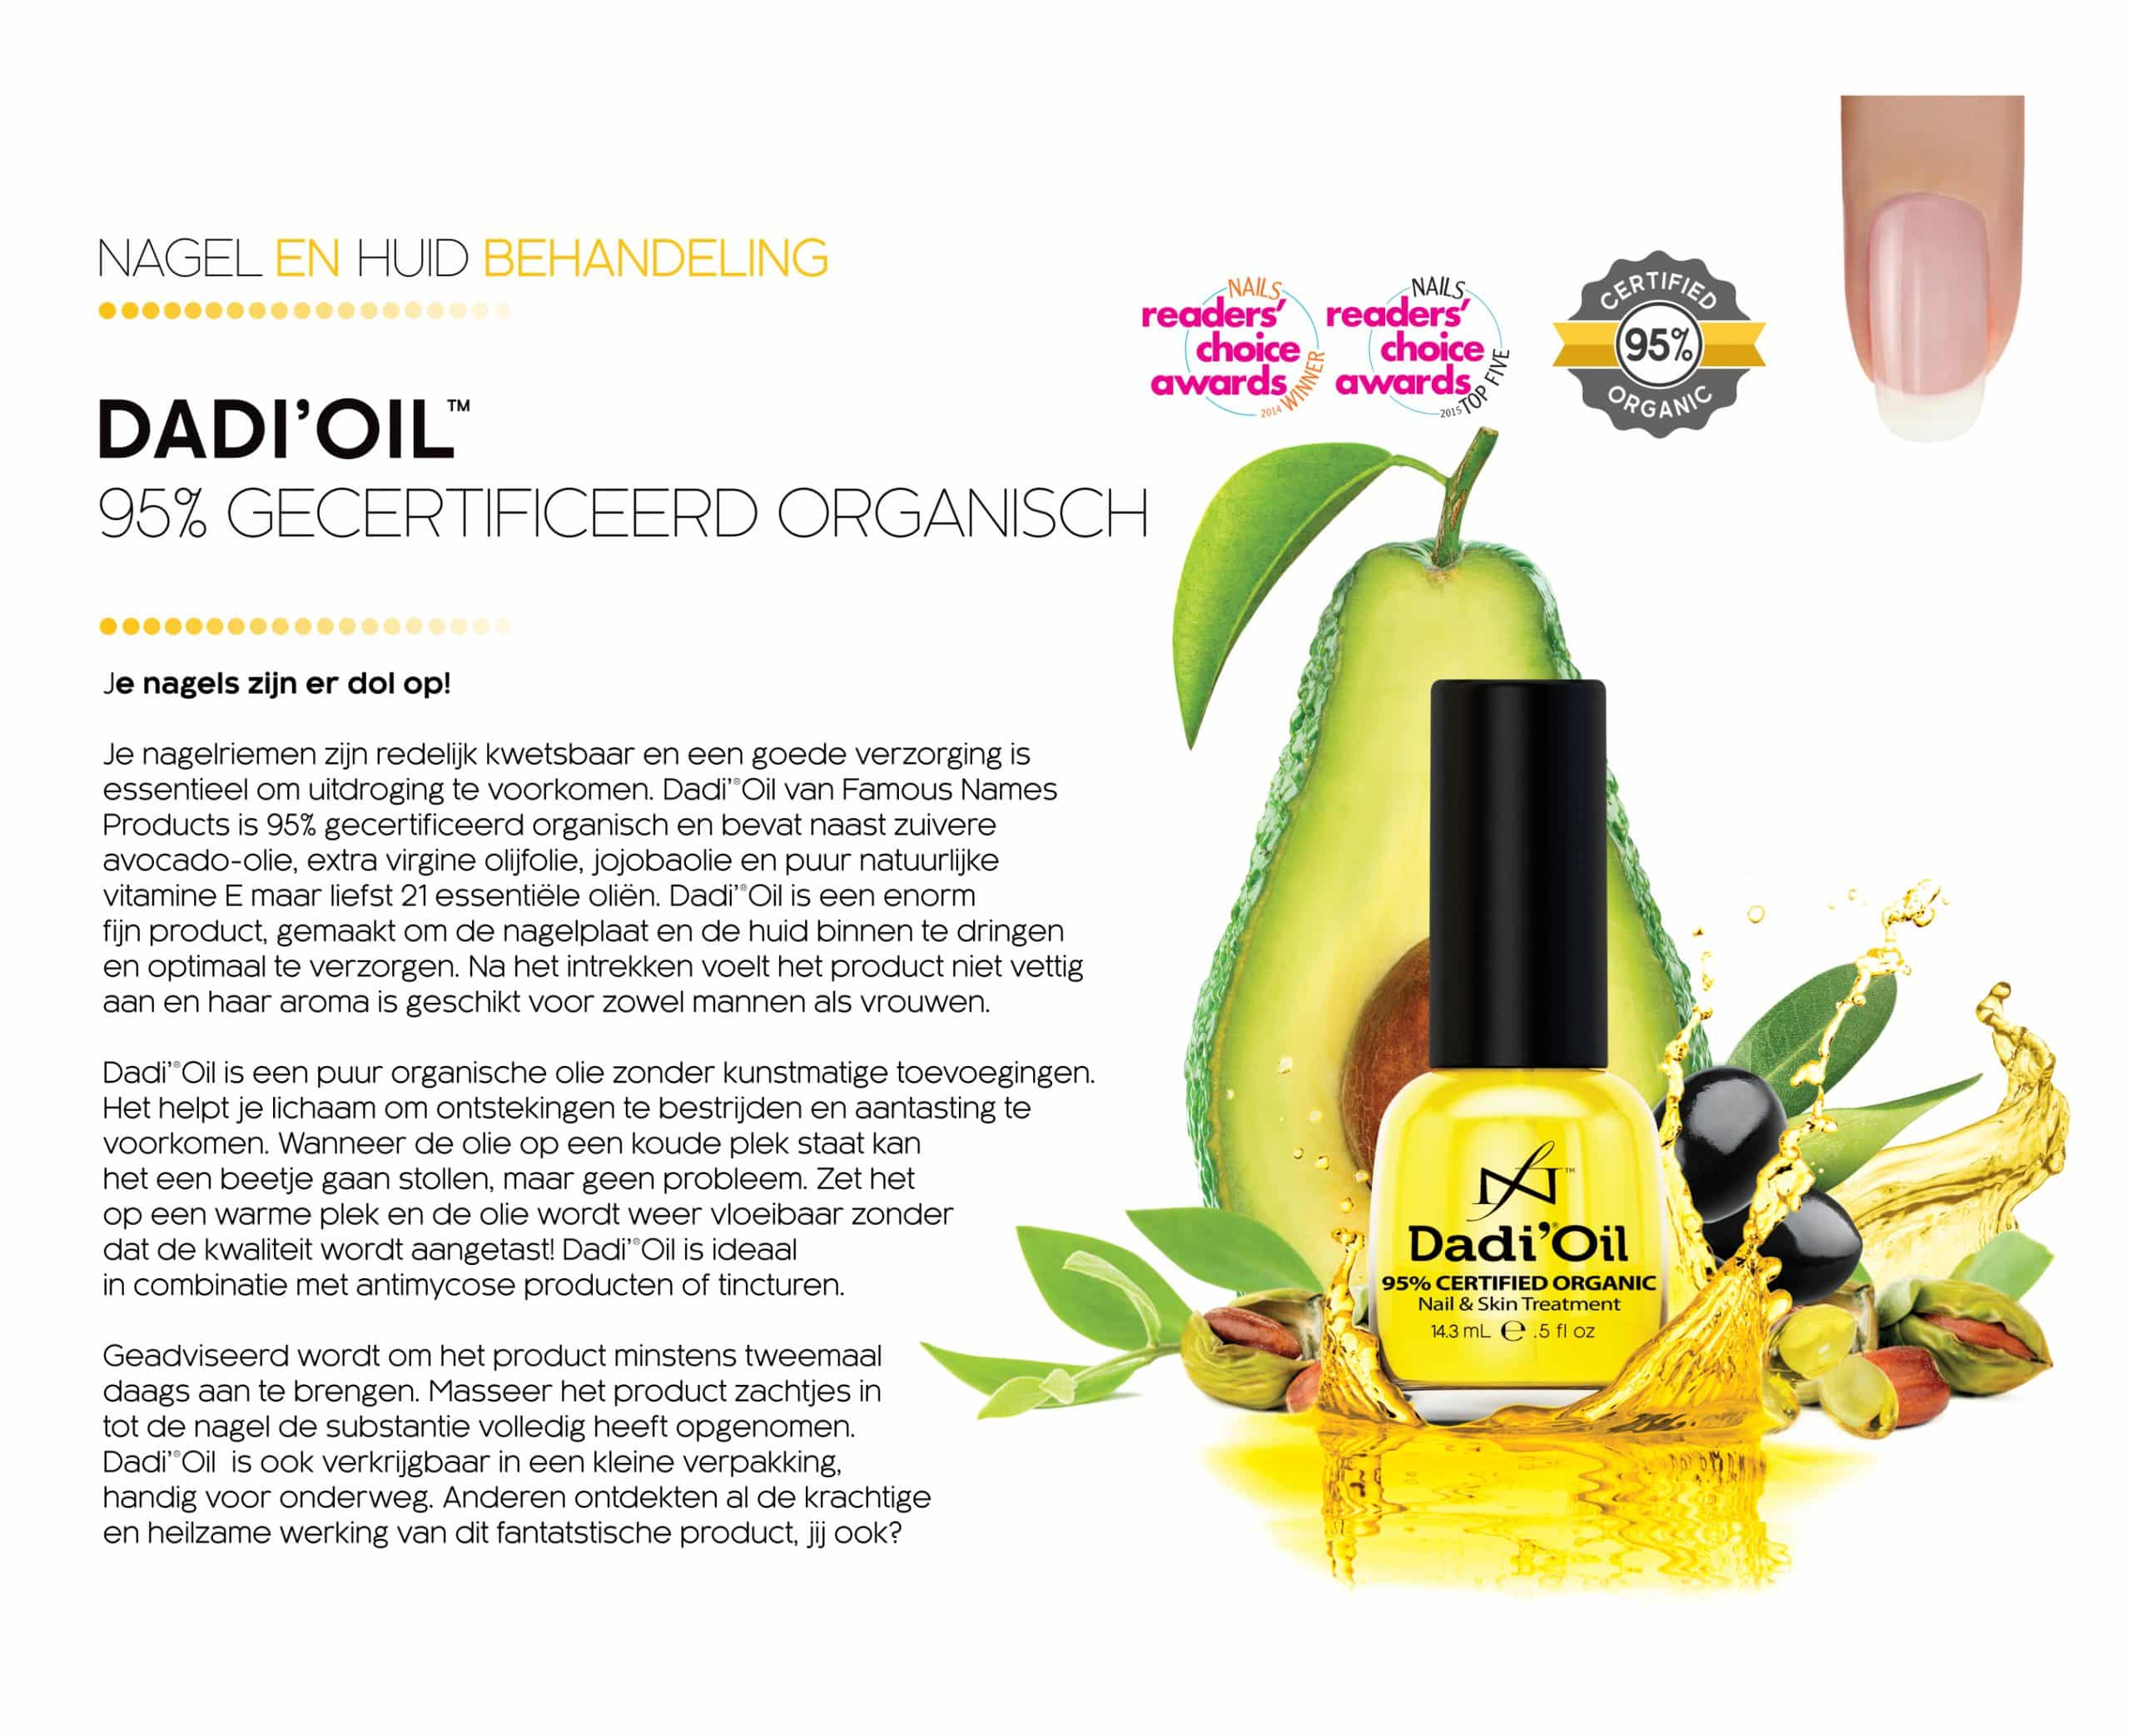 Nagelriemolie - Dadi Oil - Famous Names